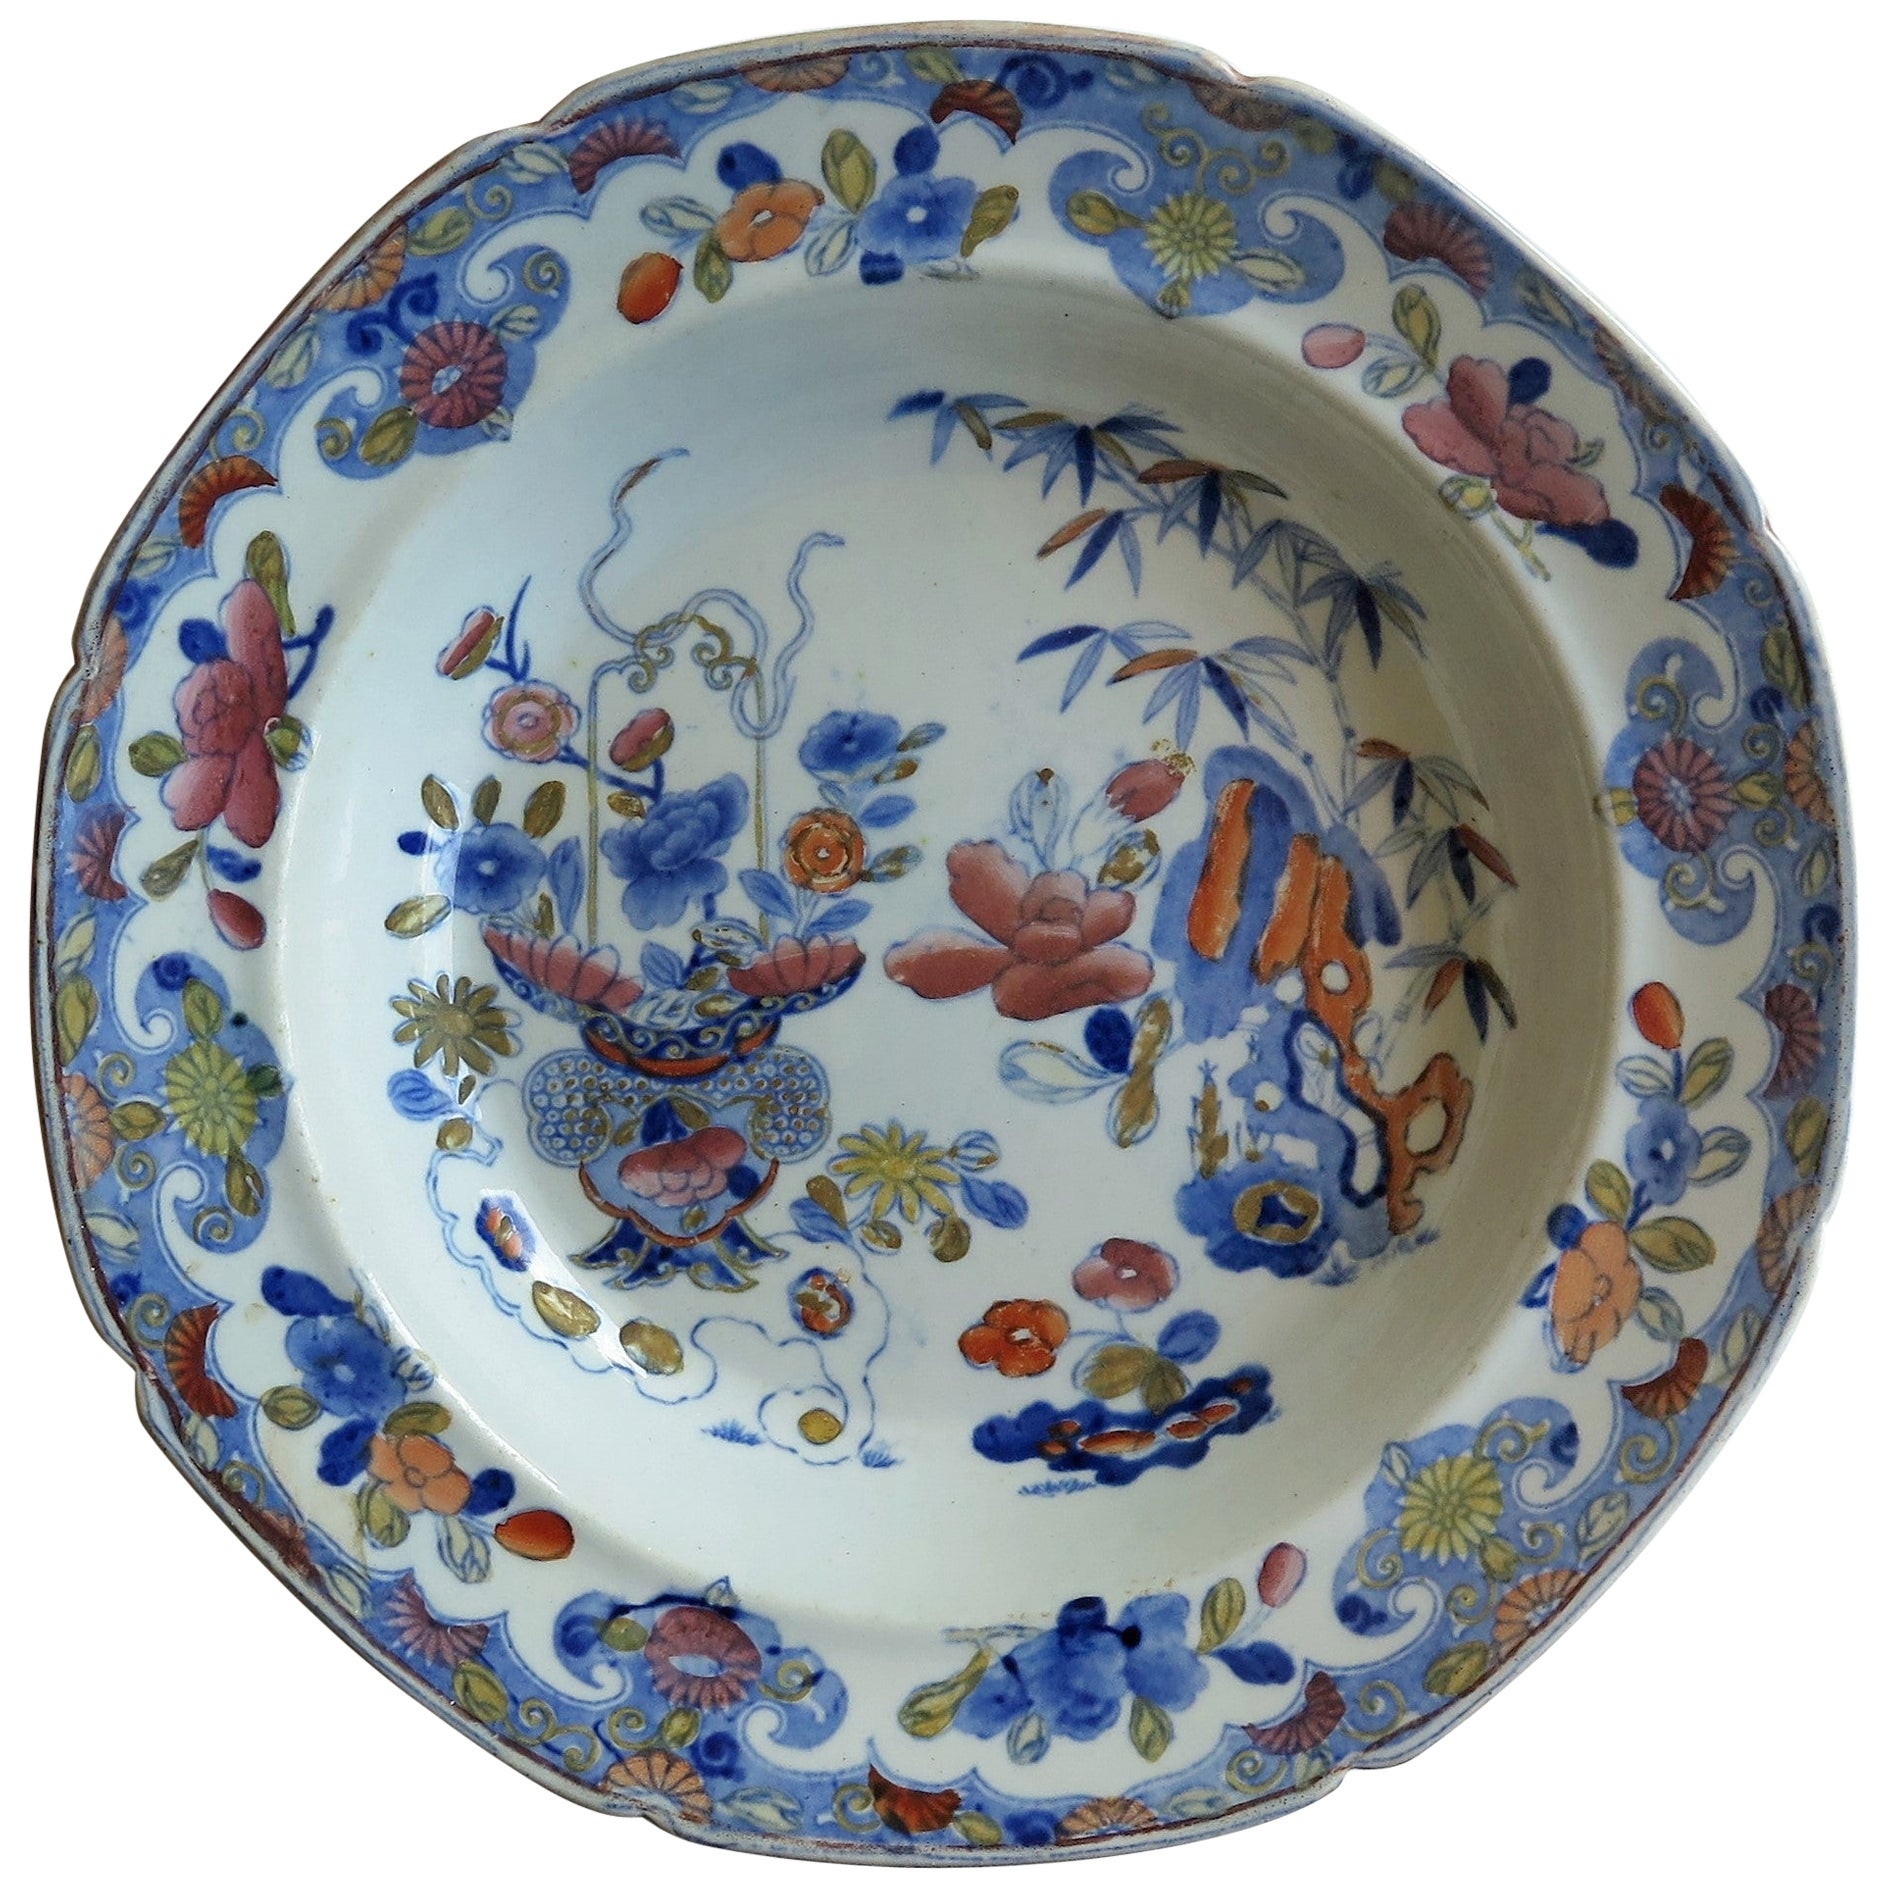 Very Early Mason's Ironstone Soup Bowl or Plate Bamboo and Basket Pattern C 1812